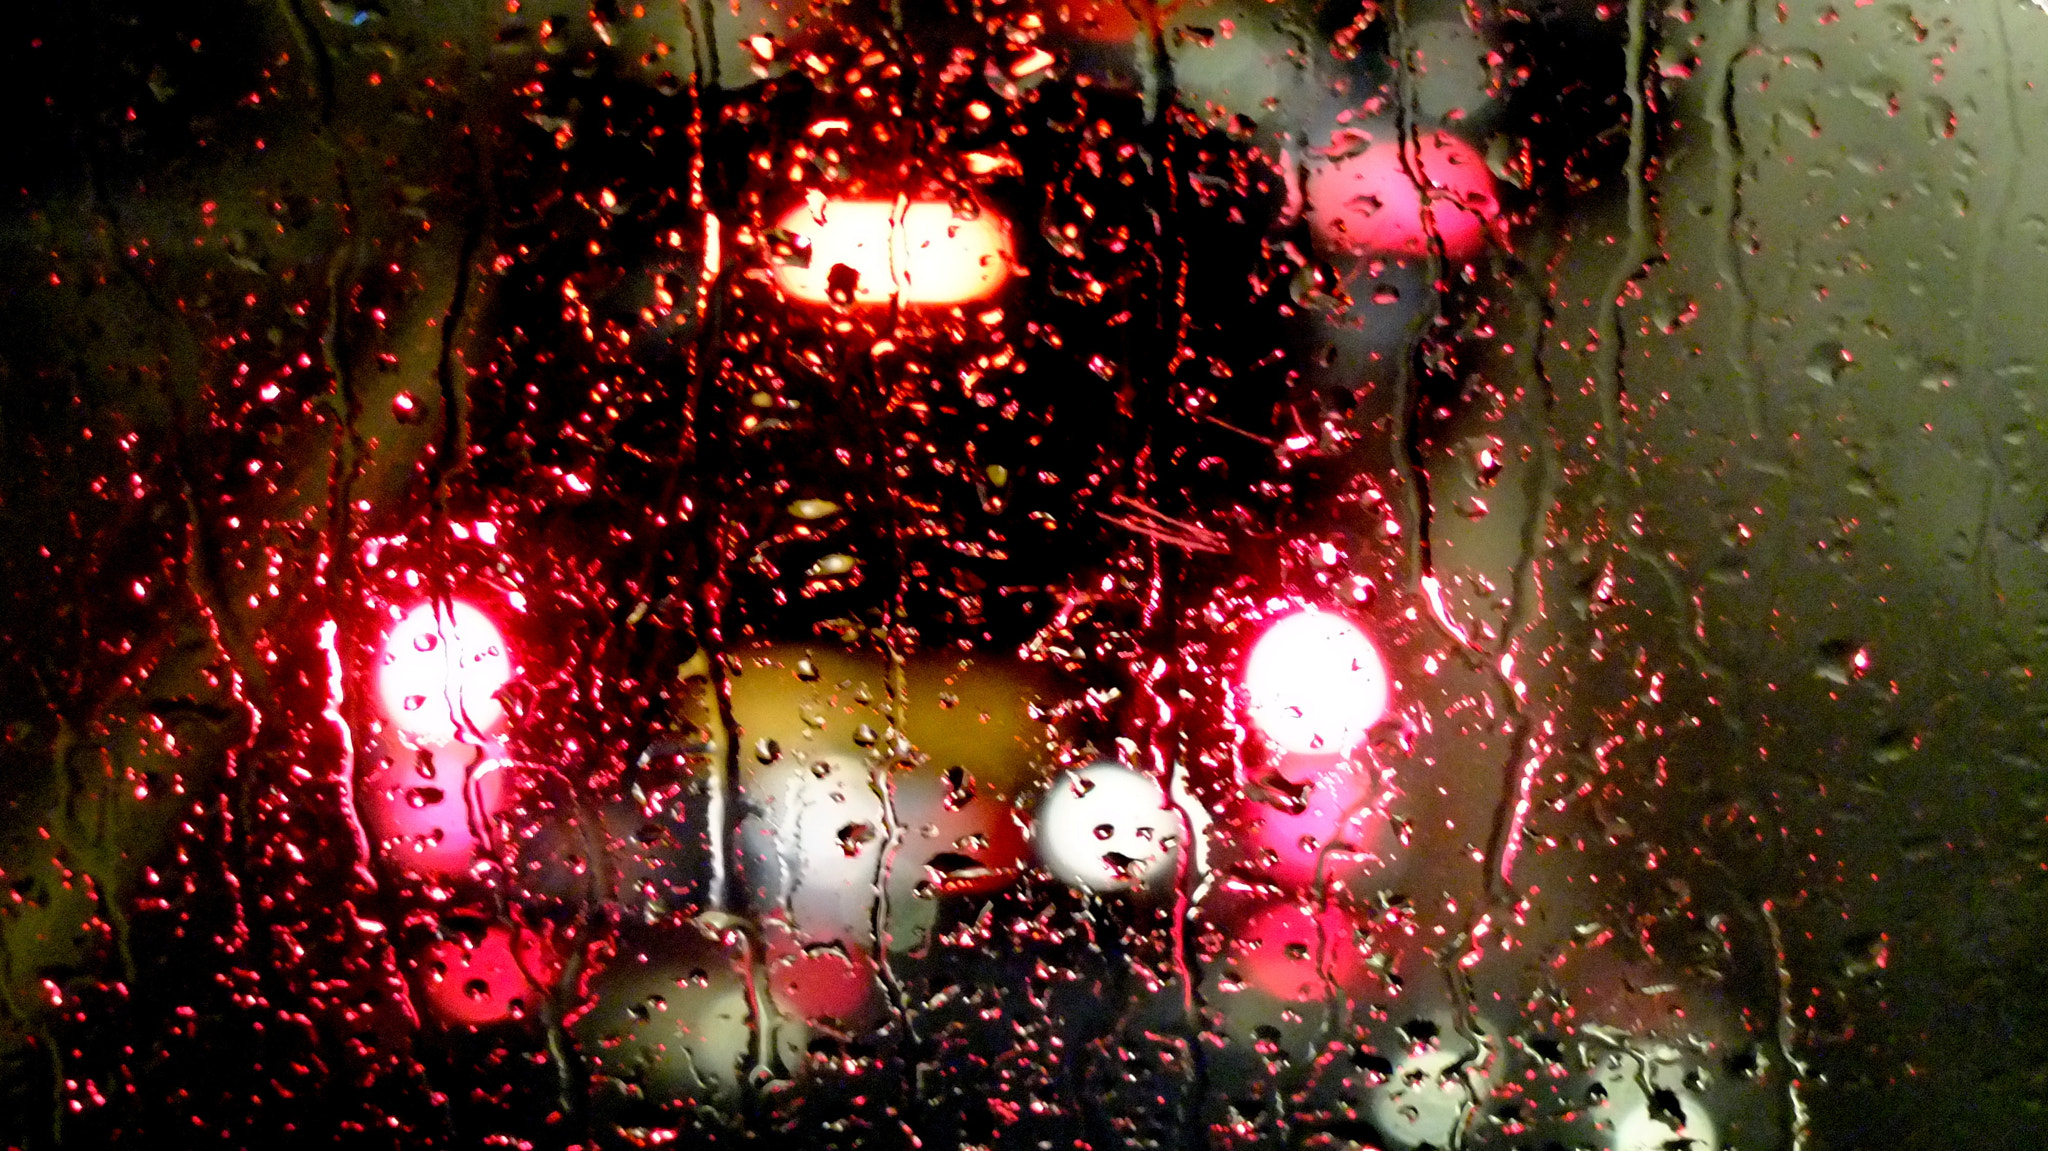 Photograph London cab in rain by Dana Pavel on 500px